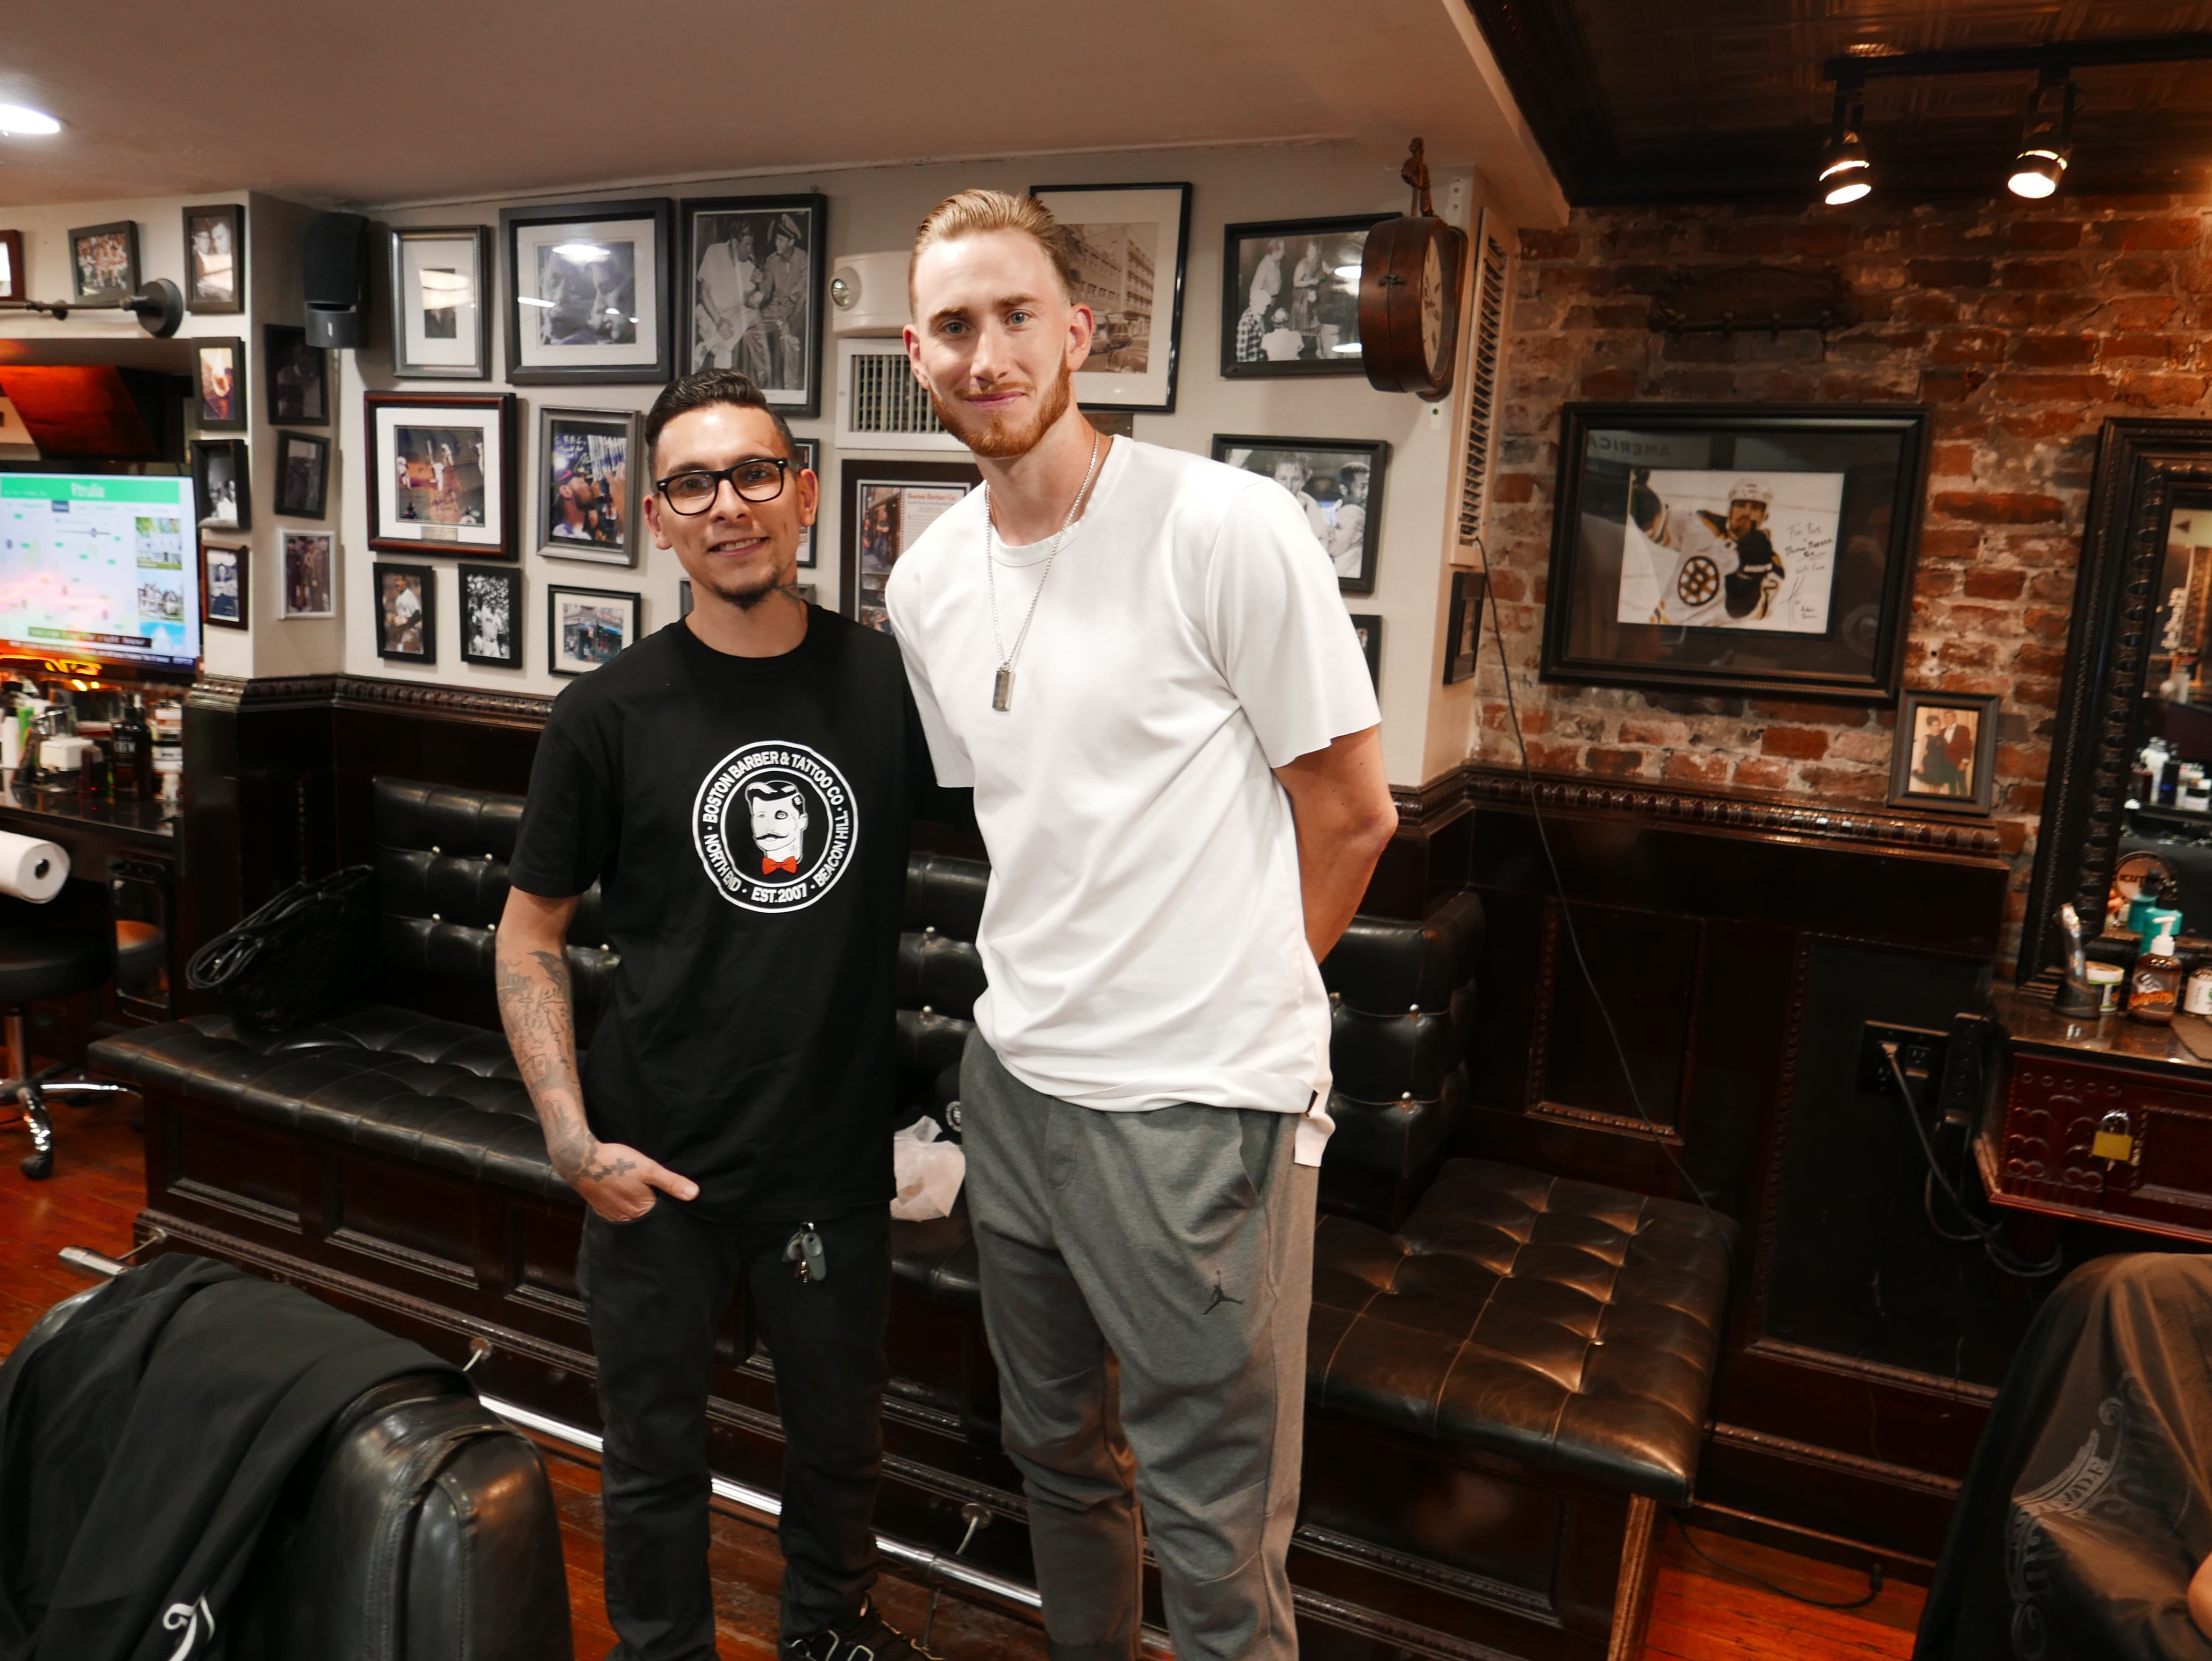 New Celtics Player Gordon Hayward Visits L'Osteria and